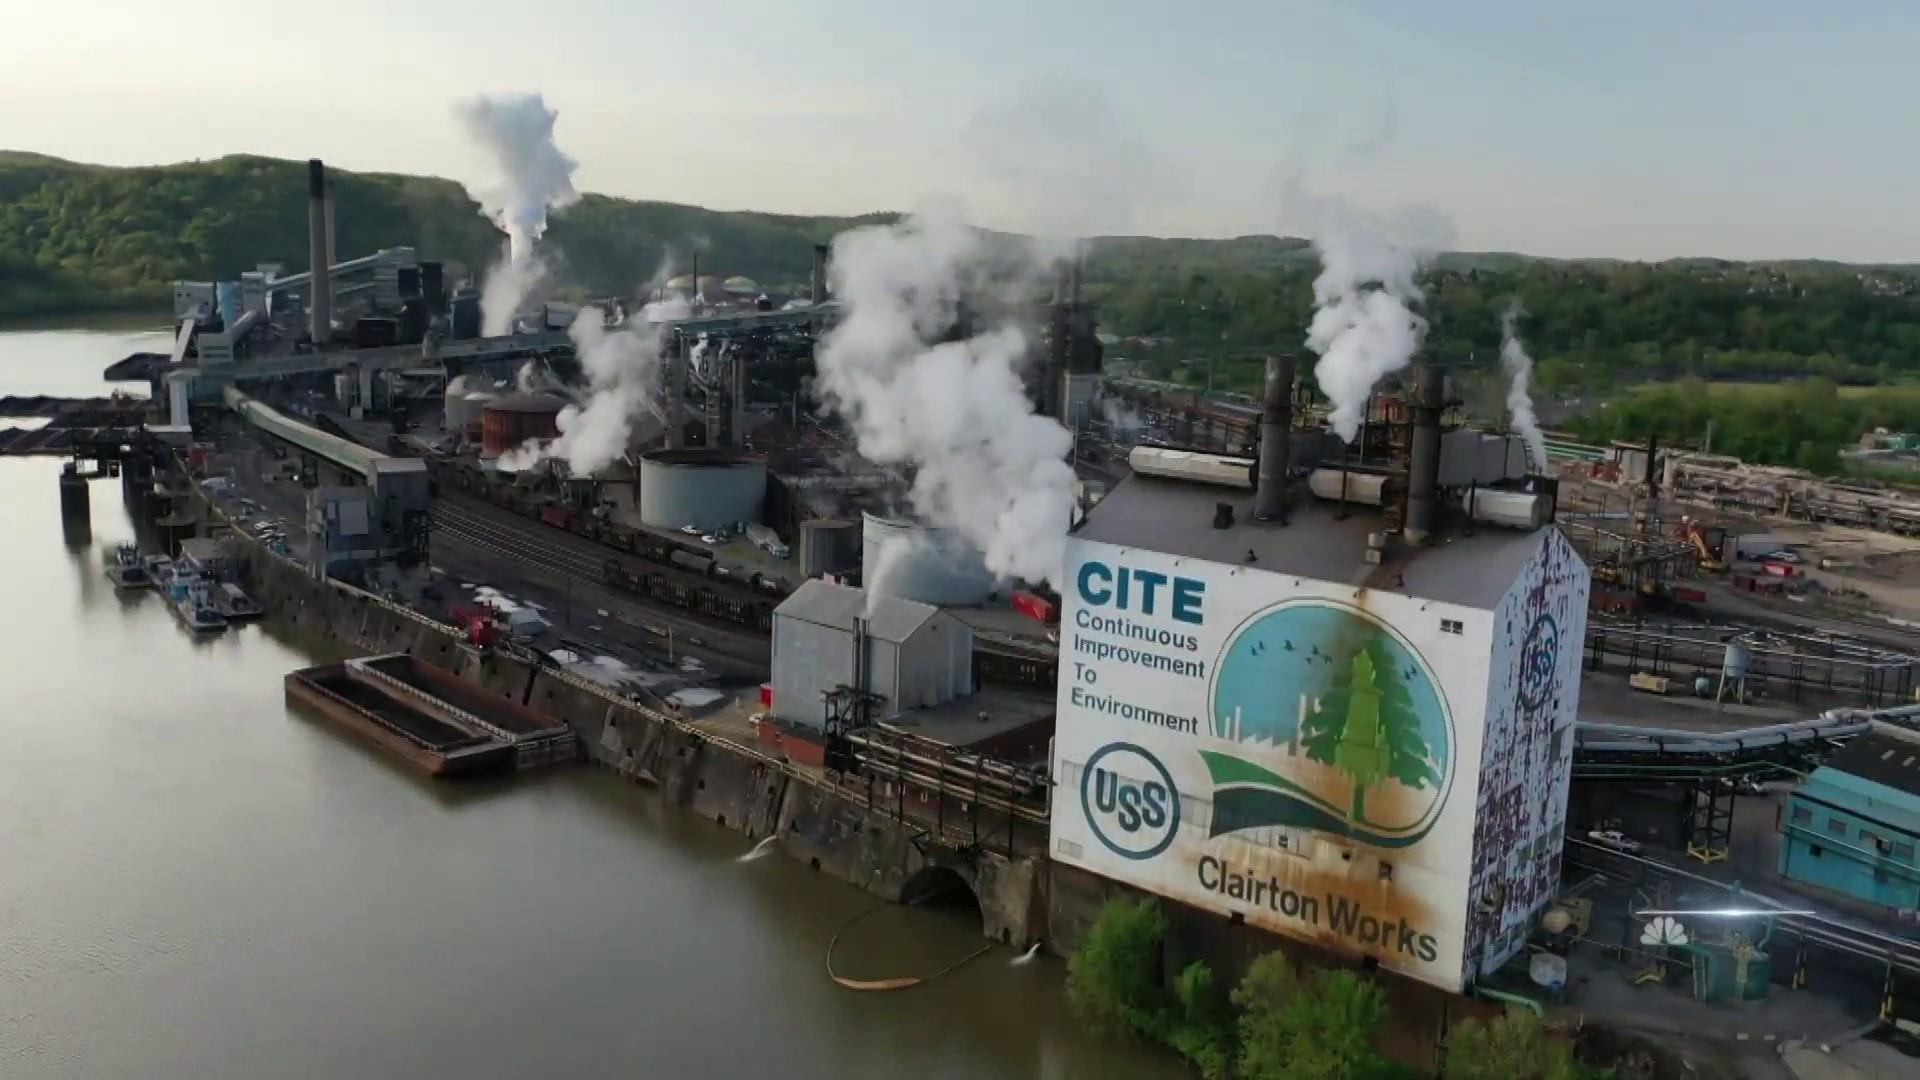 Residents concerned about air quality in shadow of Pennsylvania steel plant